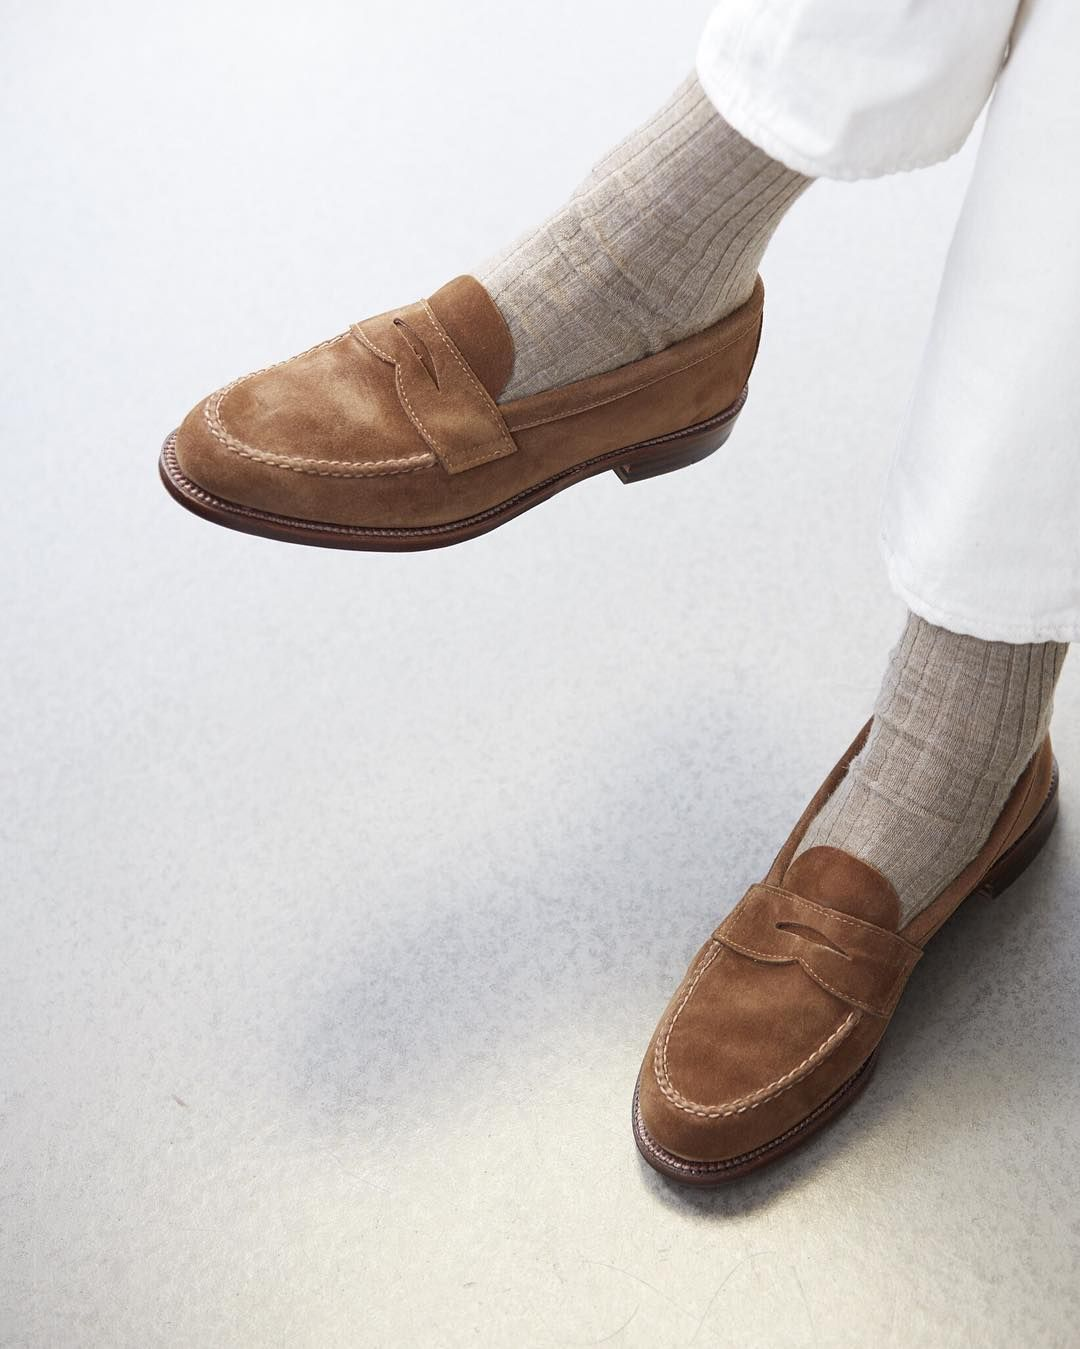 giay mua he - elle man style calendar - loafers - dmarge